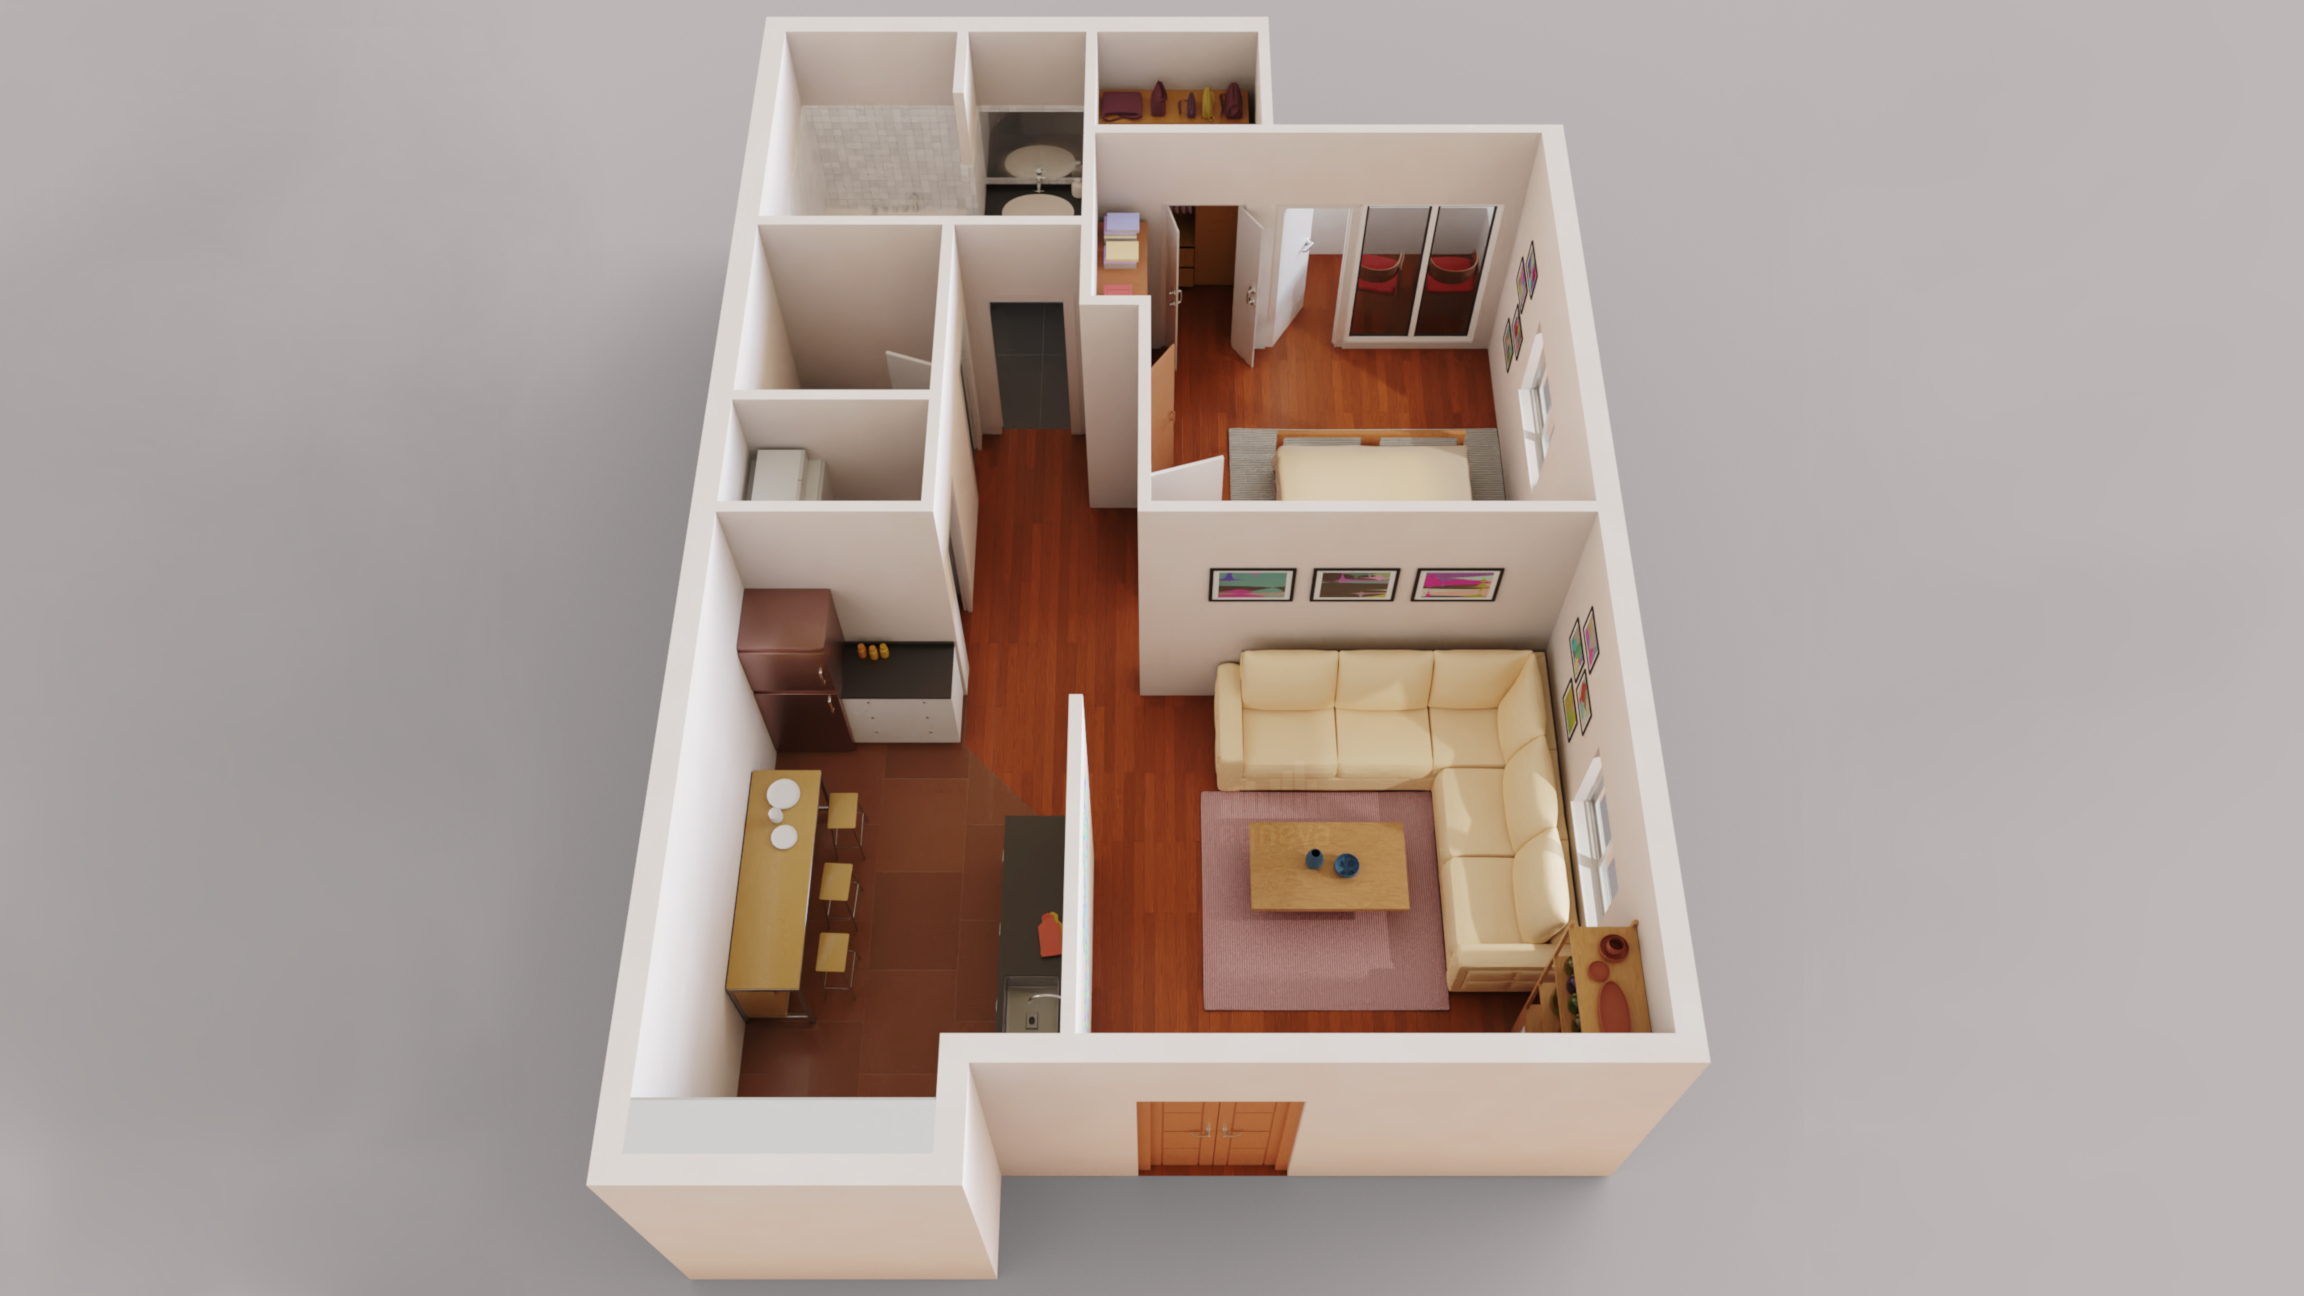 9d floor plan - One bedroom apartment - Finished Projects